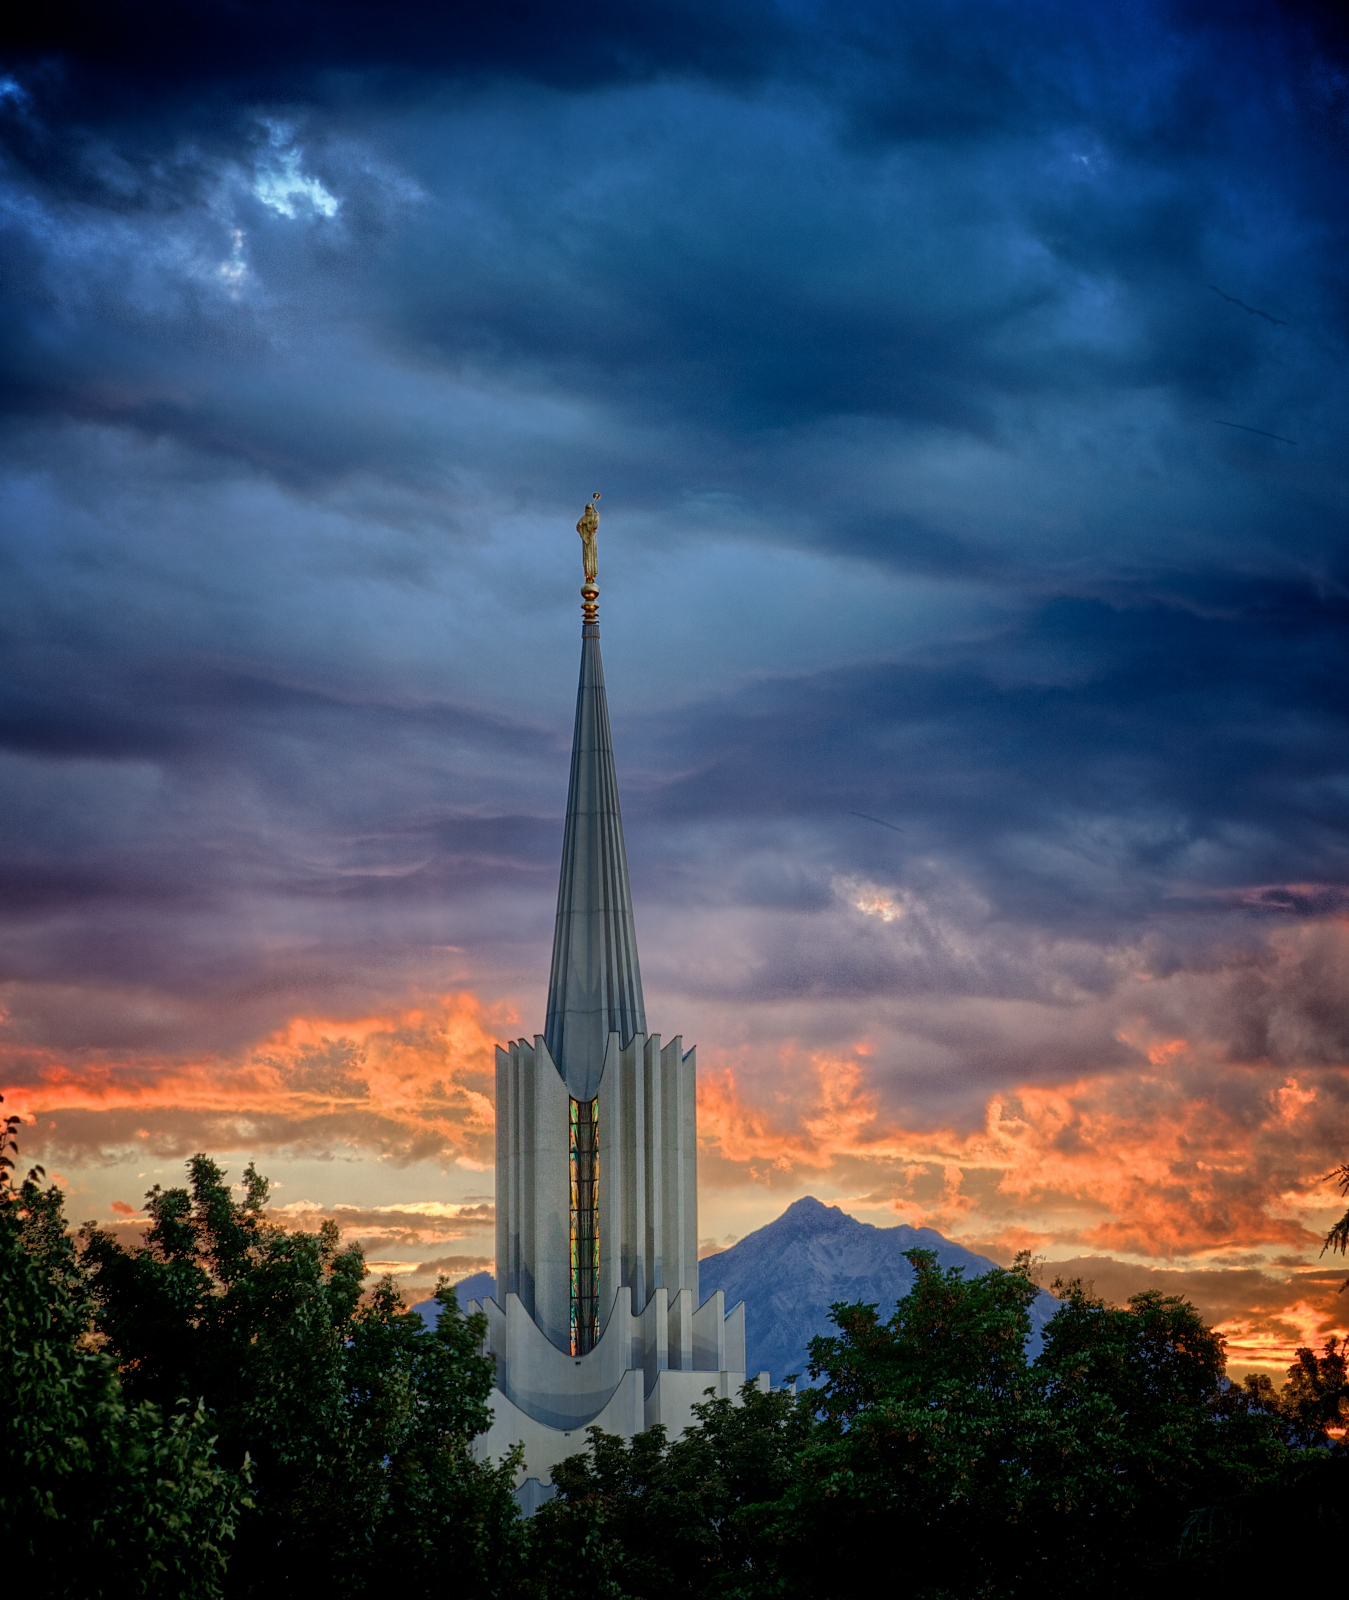 The spire of the jordan river utah temple at night - Lds temple wallpaper ...